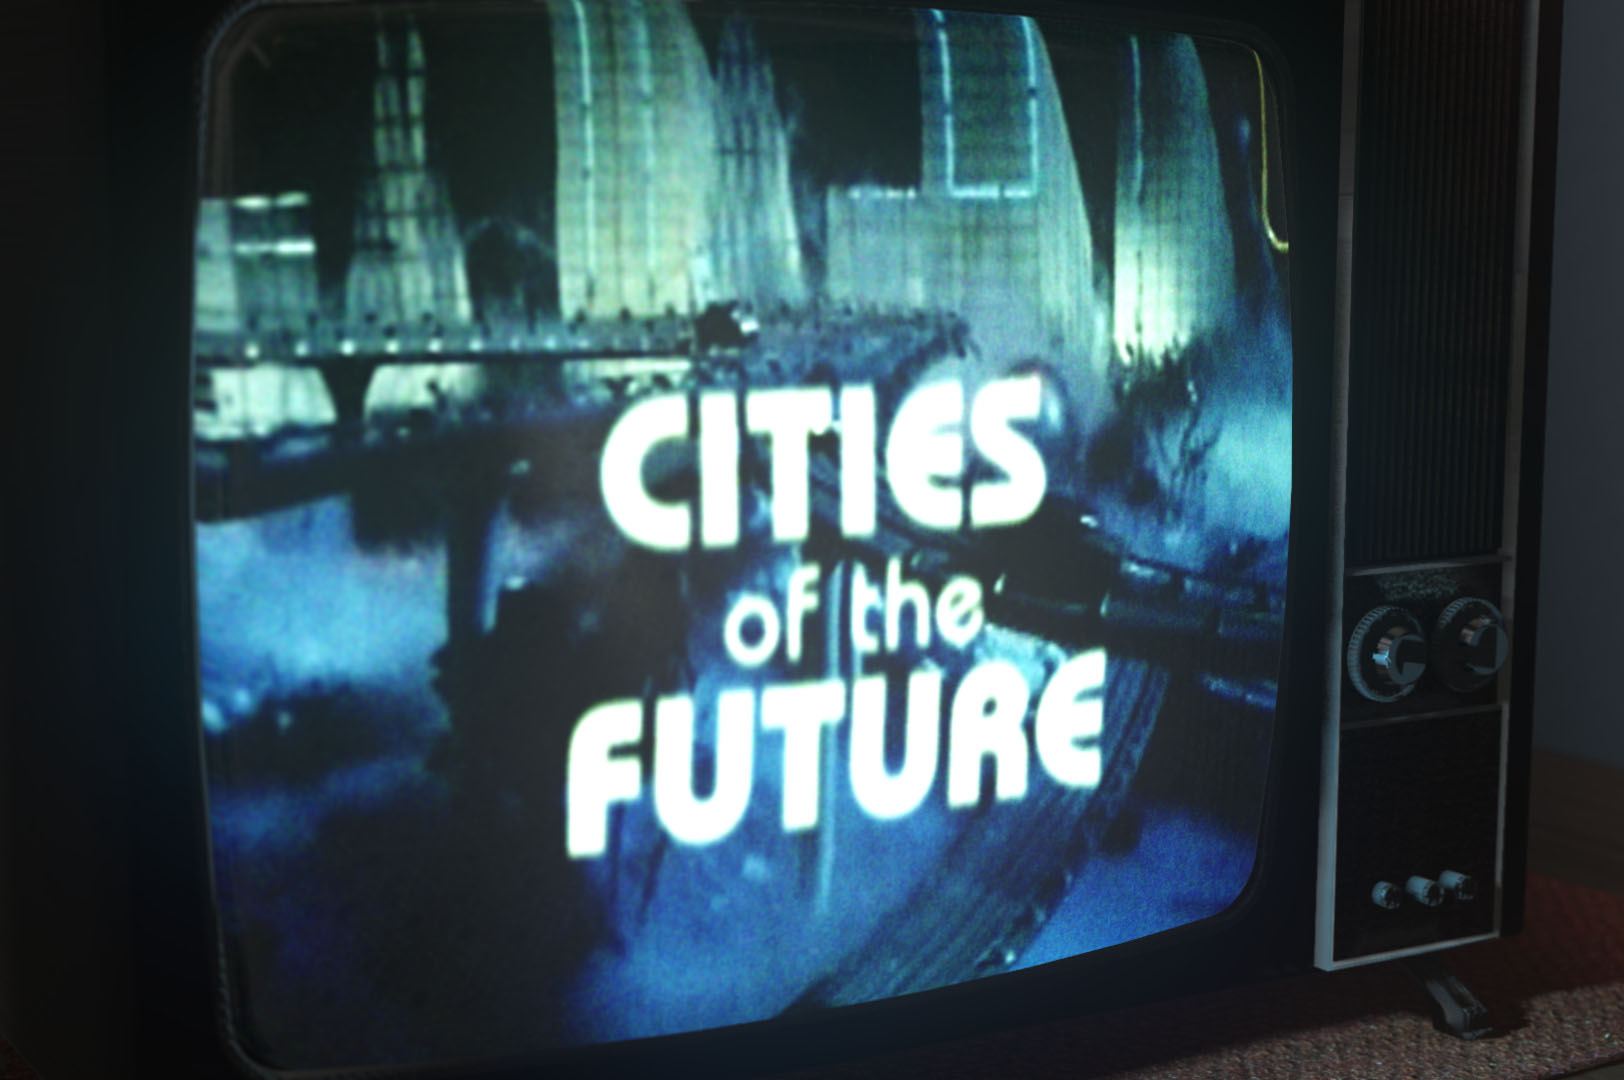 Tv_cities_of_the_future_small